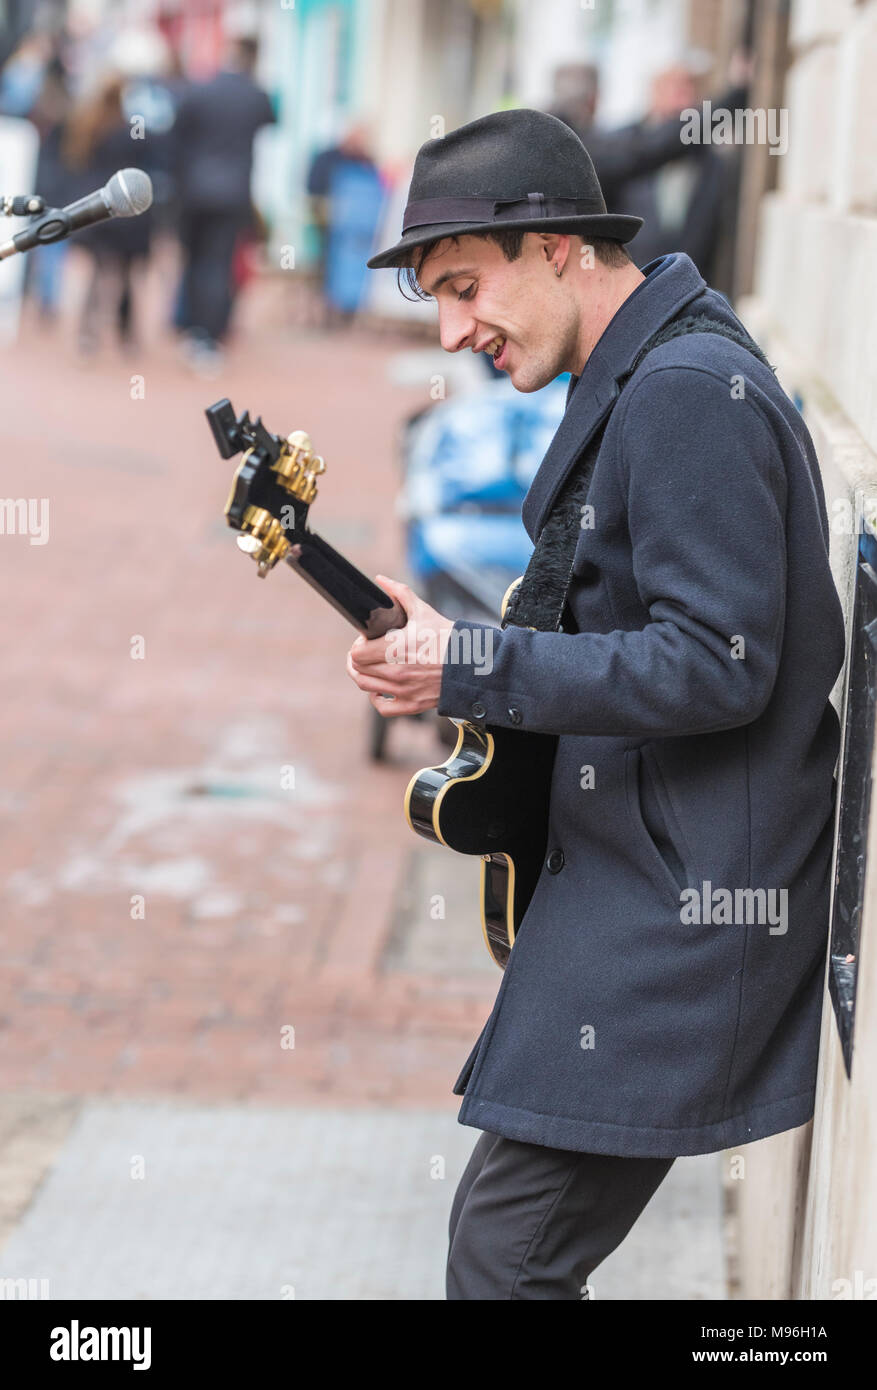 Portrait of a male street musician entertaining the public as the busker plays guitar in Brighton, East Sussex, England, UK. - Stock Image